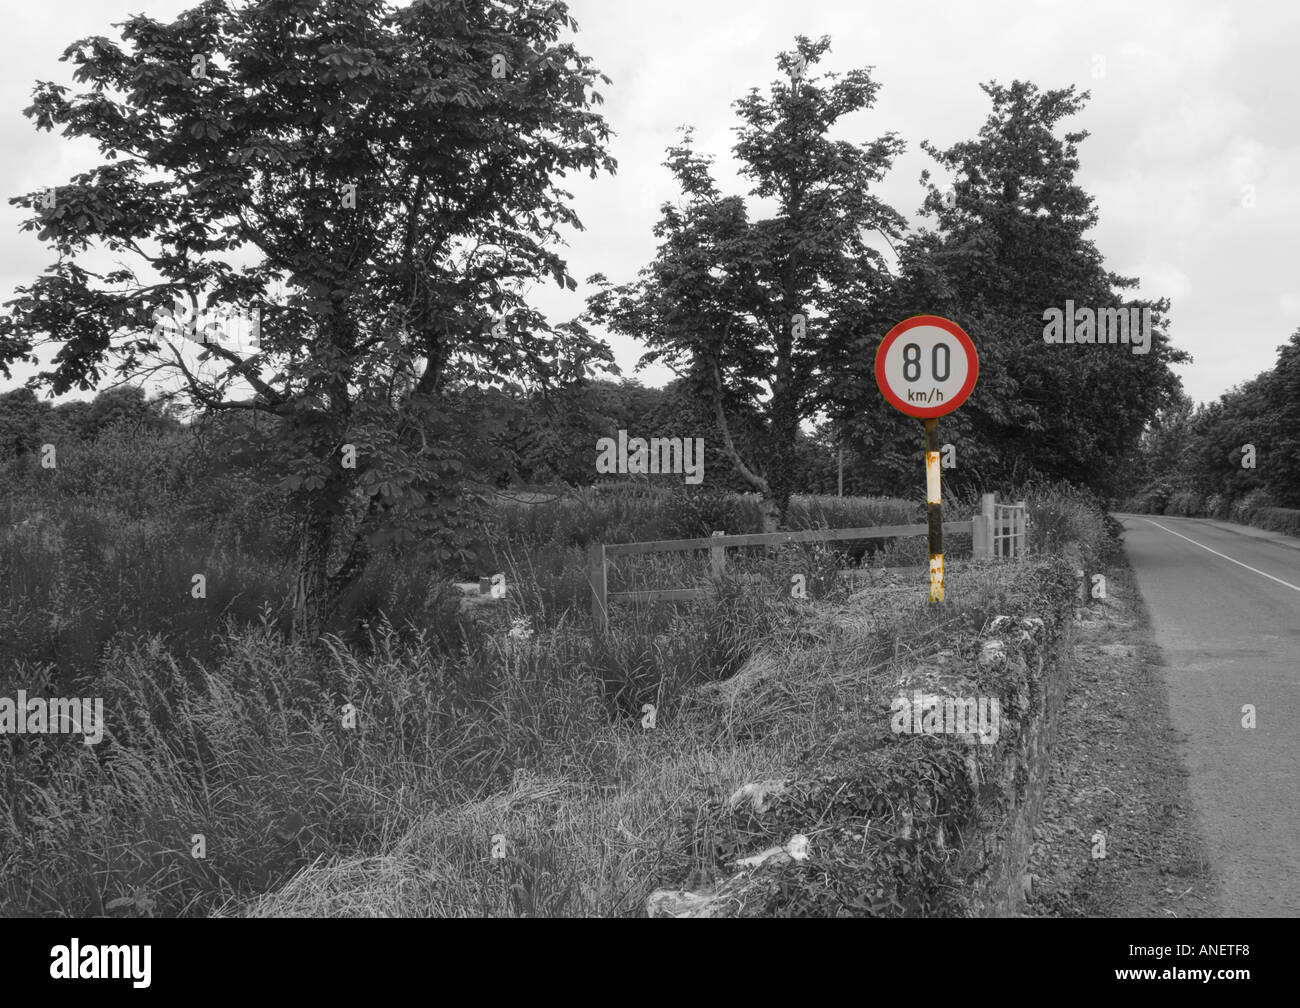 Road sign on Irish Country Road. Eighty kilometres speed limit. Sign in Colour, road in monotone. - Stock Image